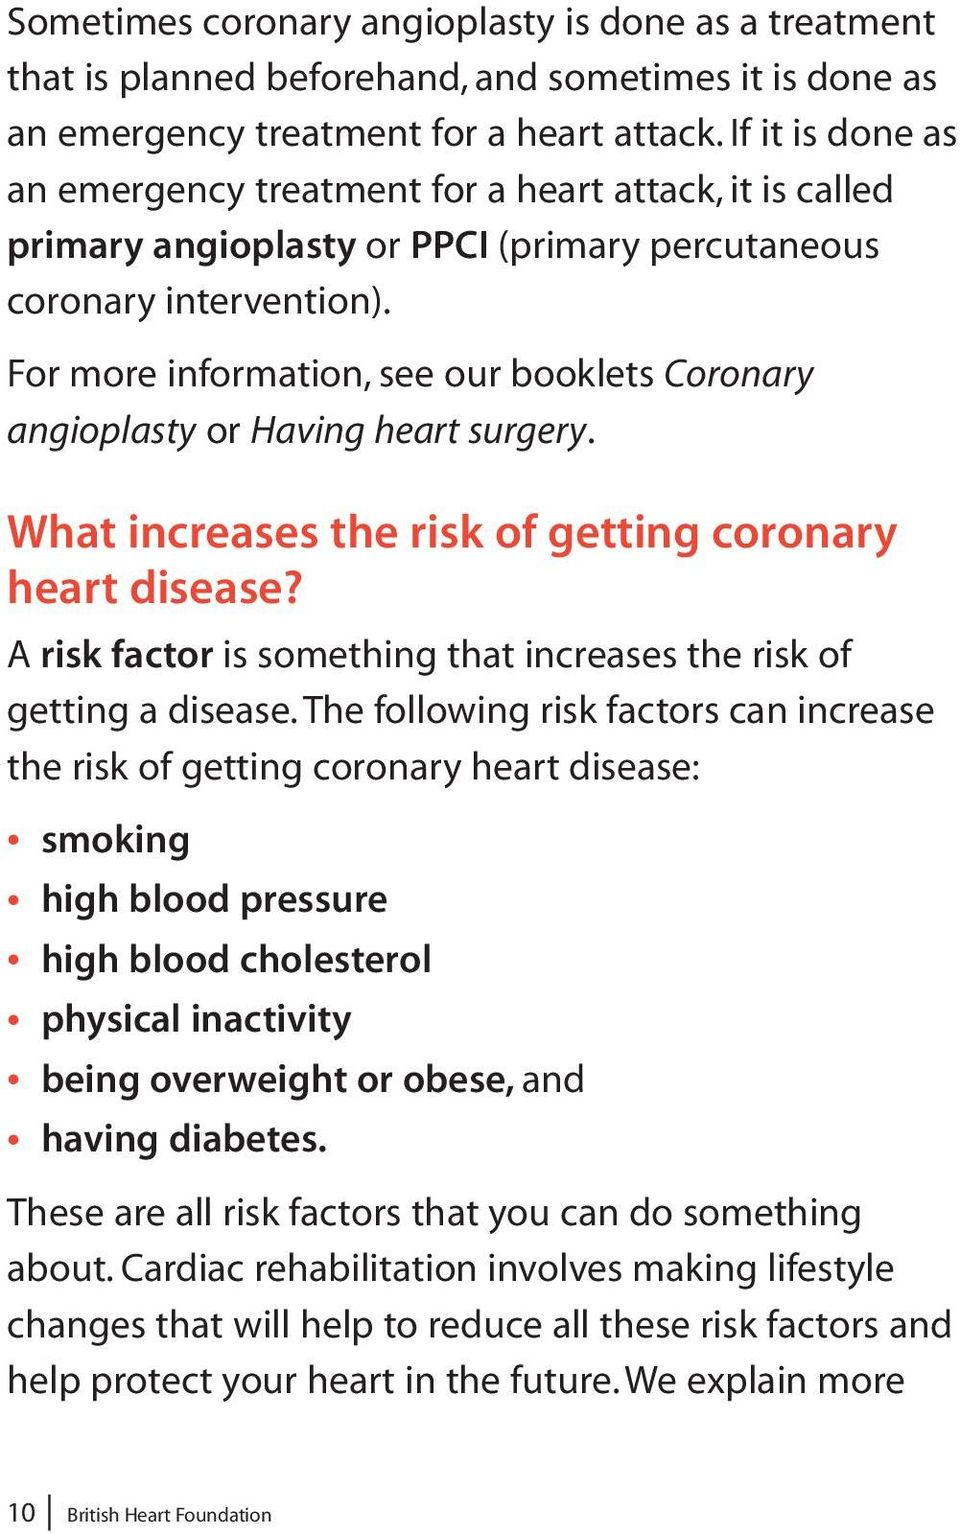 For more information, see our booklets Coronary angioplasty or Having heart surgery. What increases the risk of getting coronary heart disease?